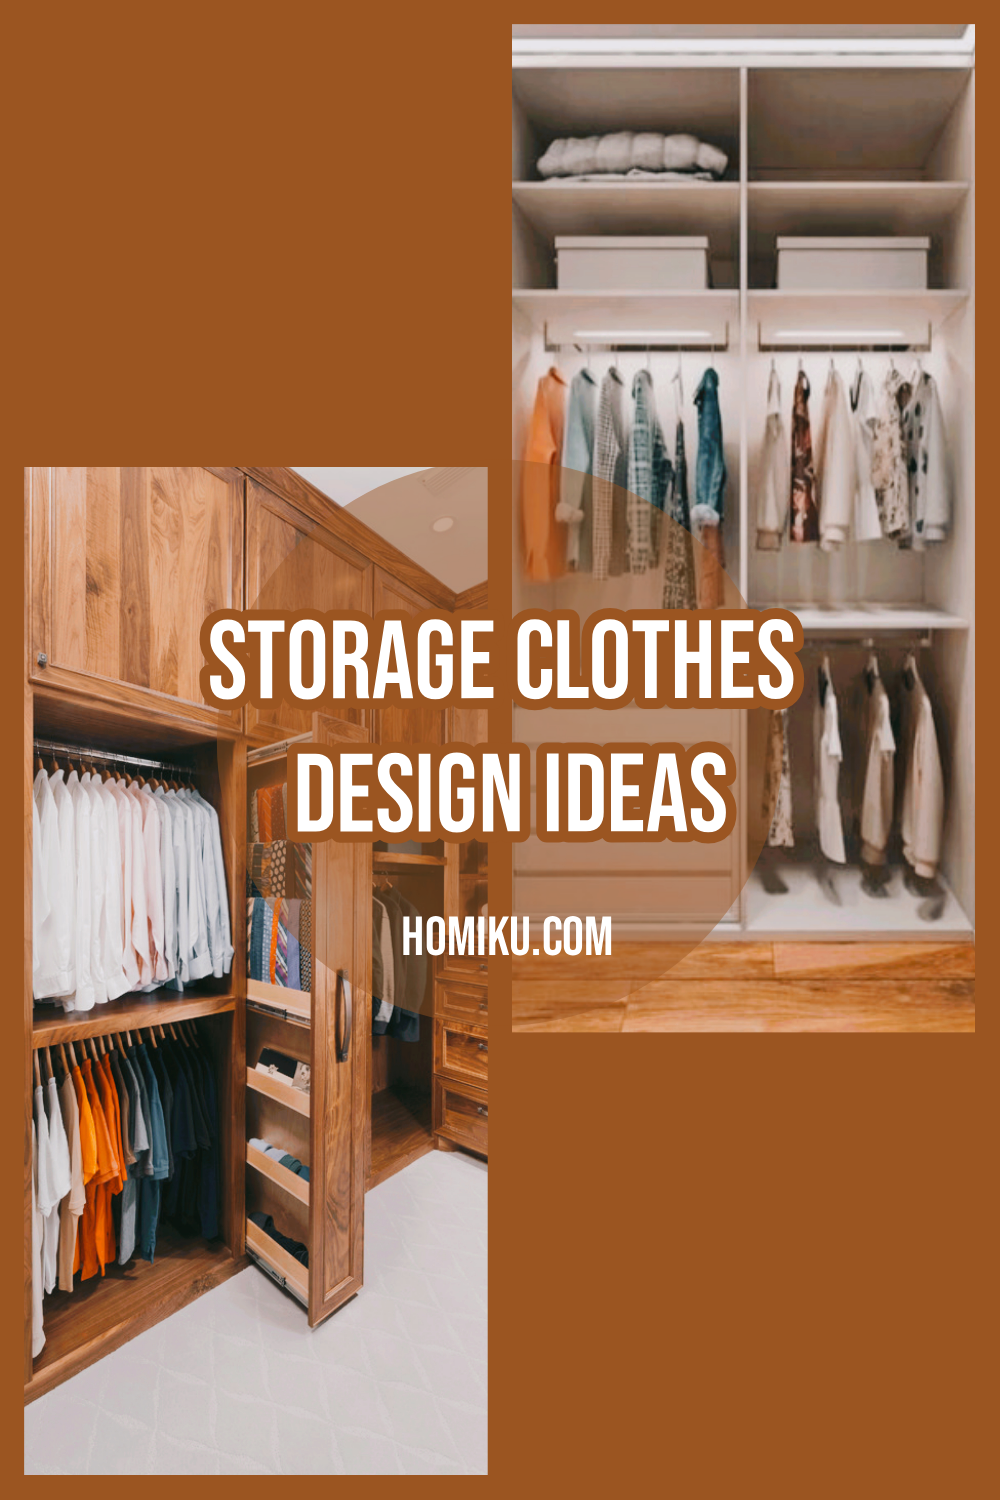 52 Wardrobe Designs You Can Try To Store All Your Clothes Homiku Com In 2020 Wardrobe Design Fitted Wardrobe Design Modular Wardrobes